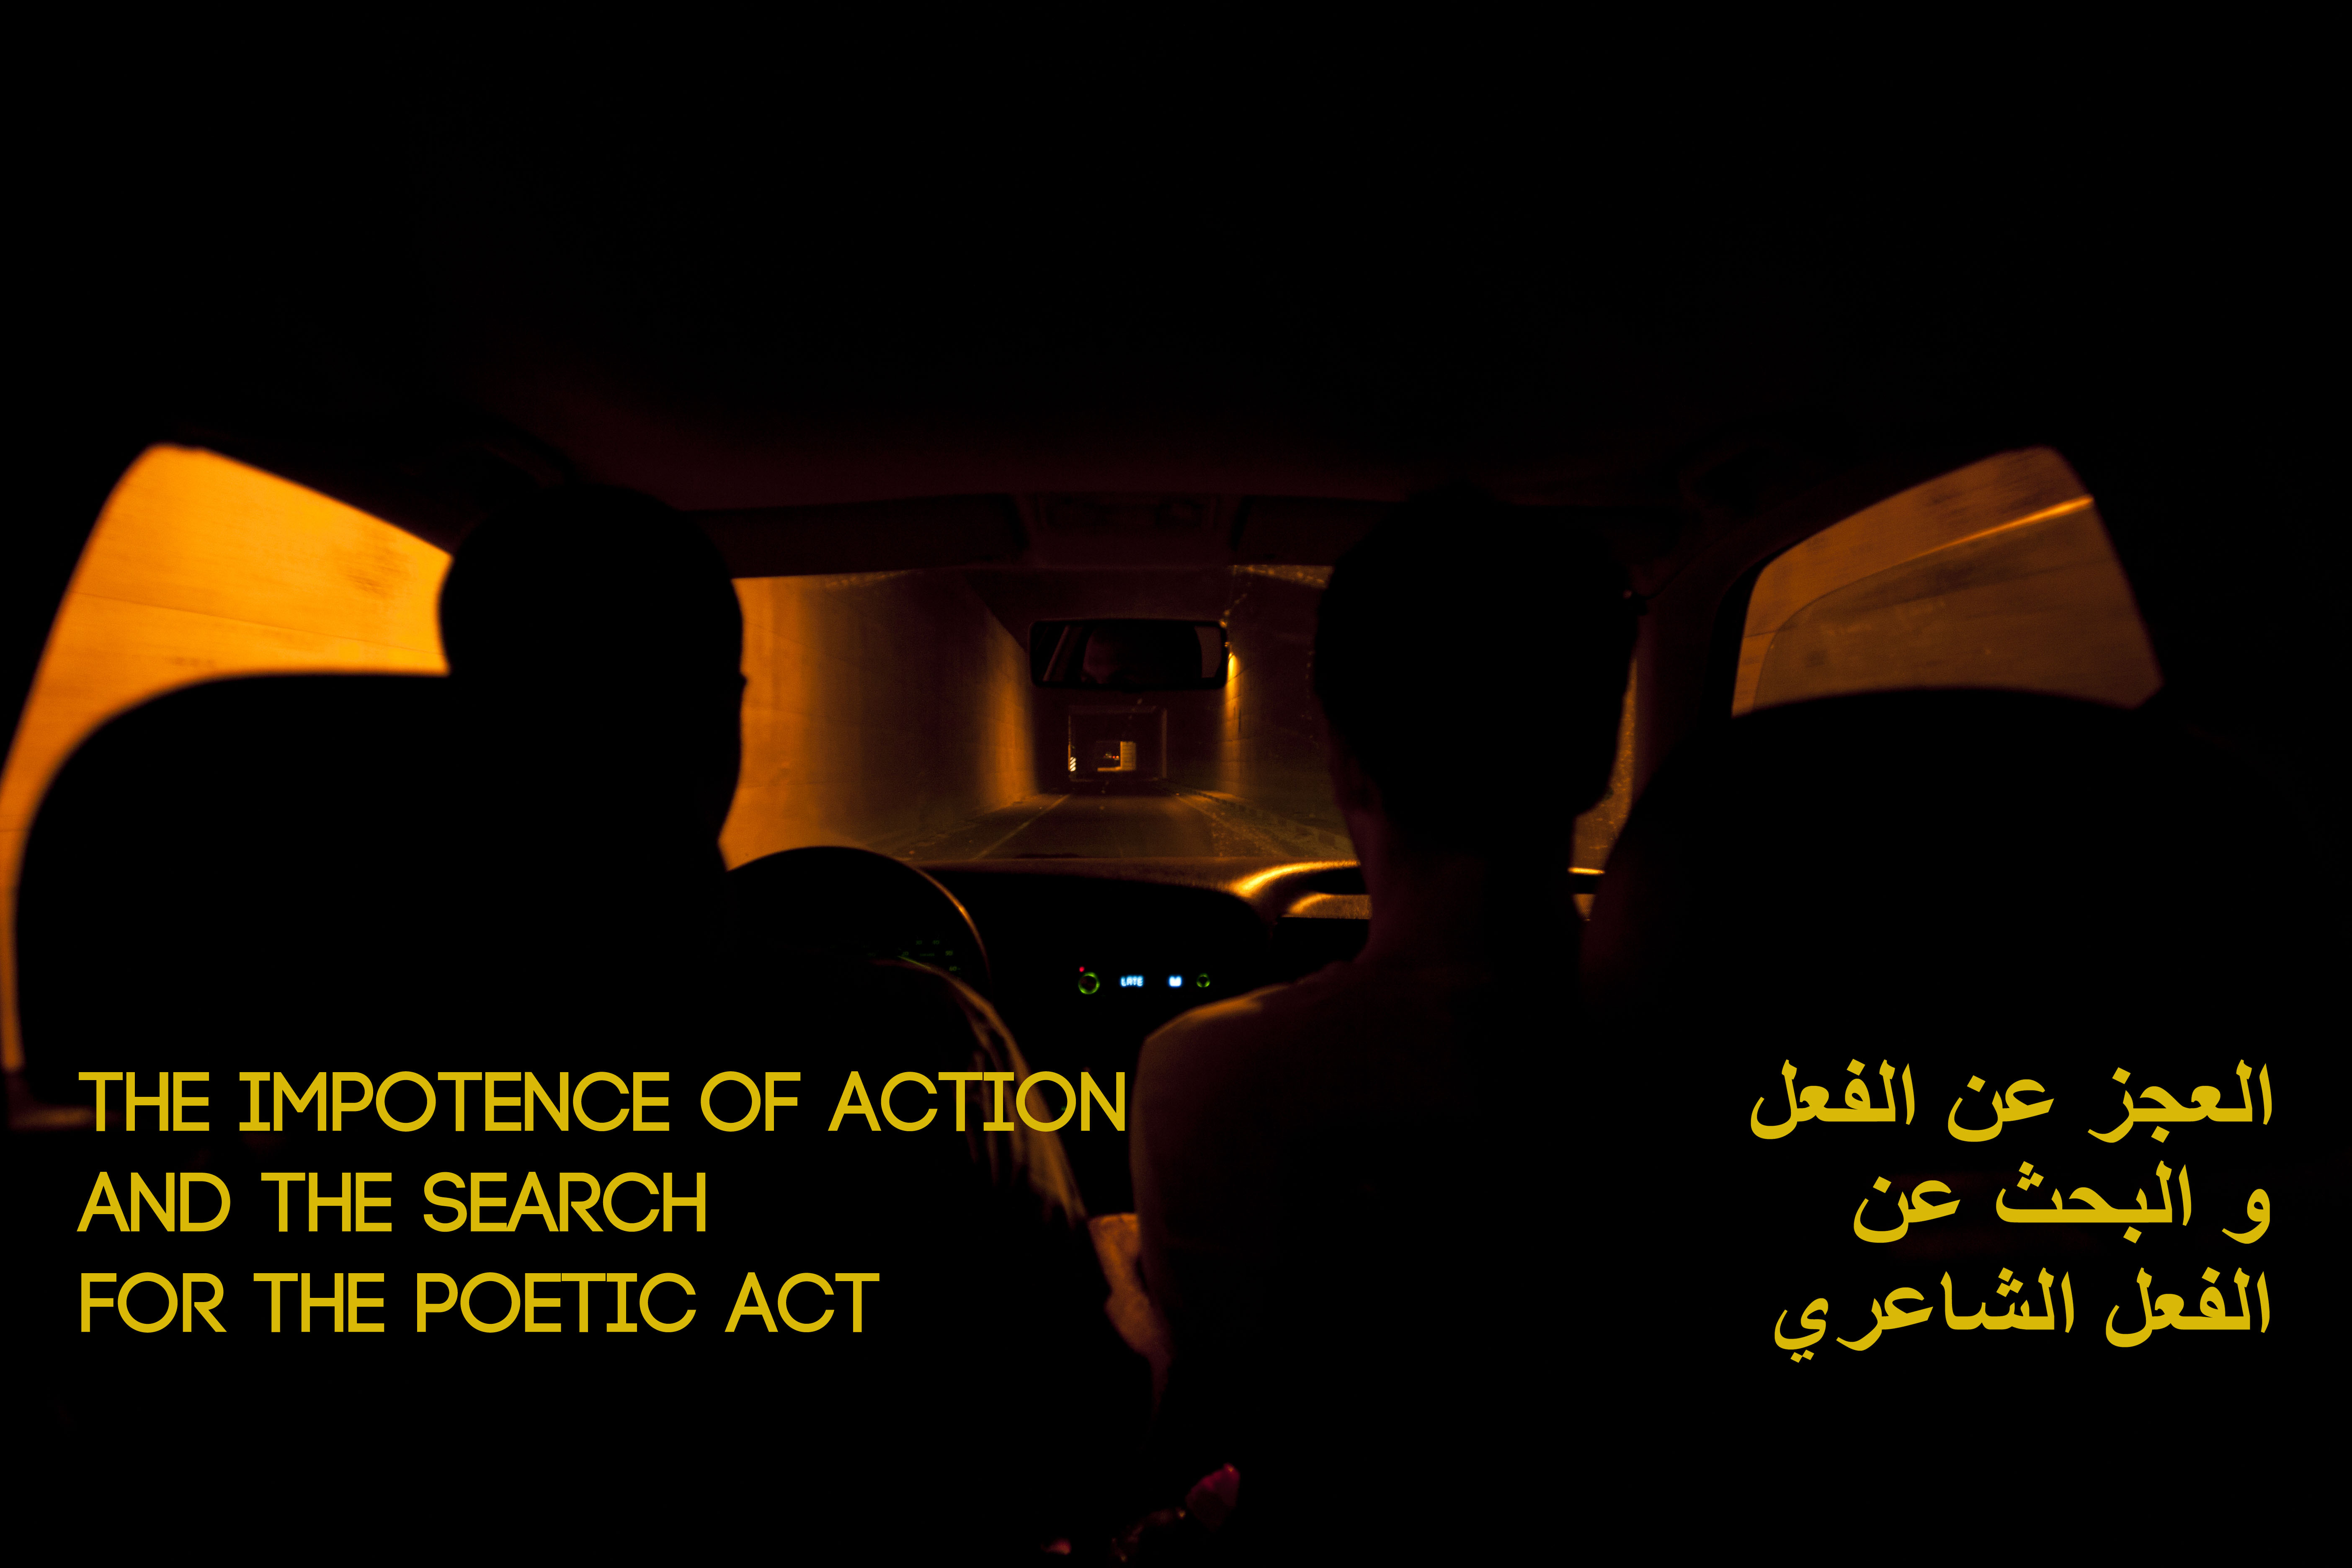 Basel Abbas and Ruanne Abou-Rahme, The Incidental Insurgents (2012- ongoing), Chapter 2, Video Still 5